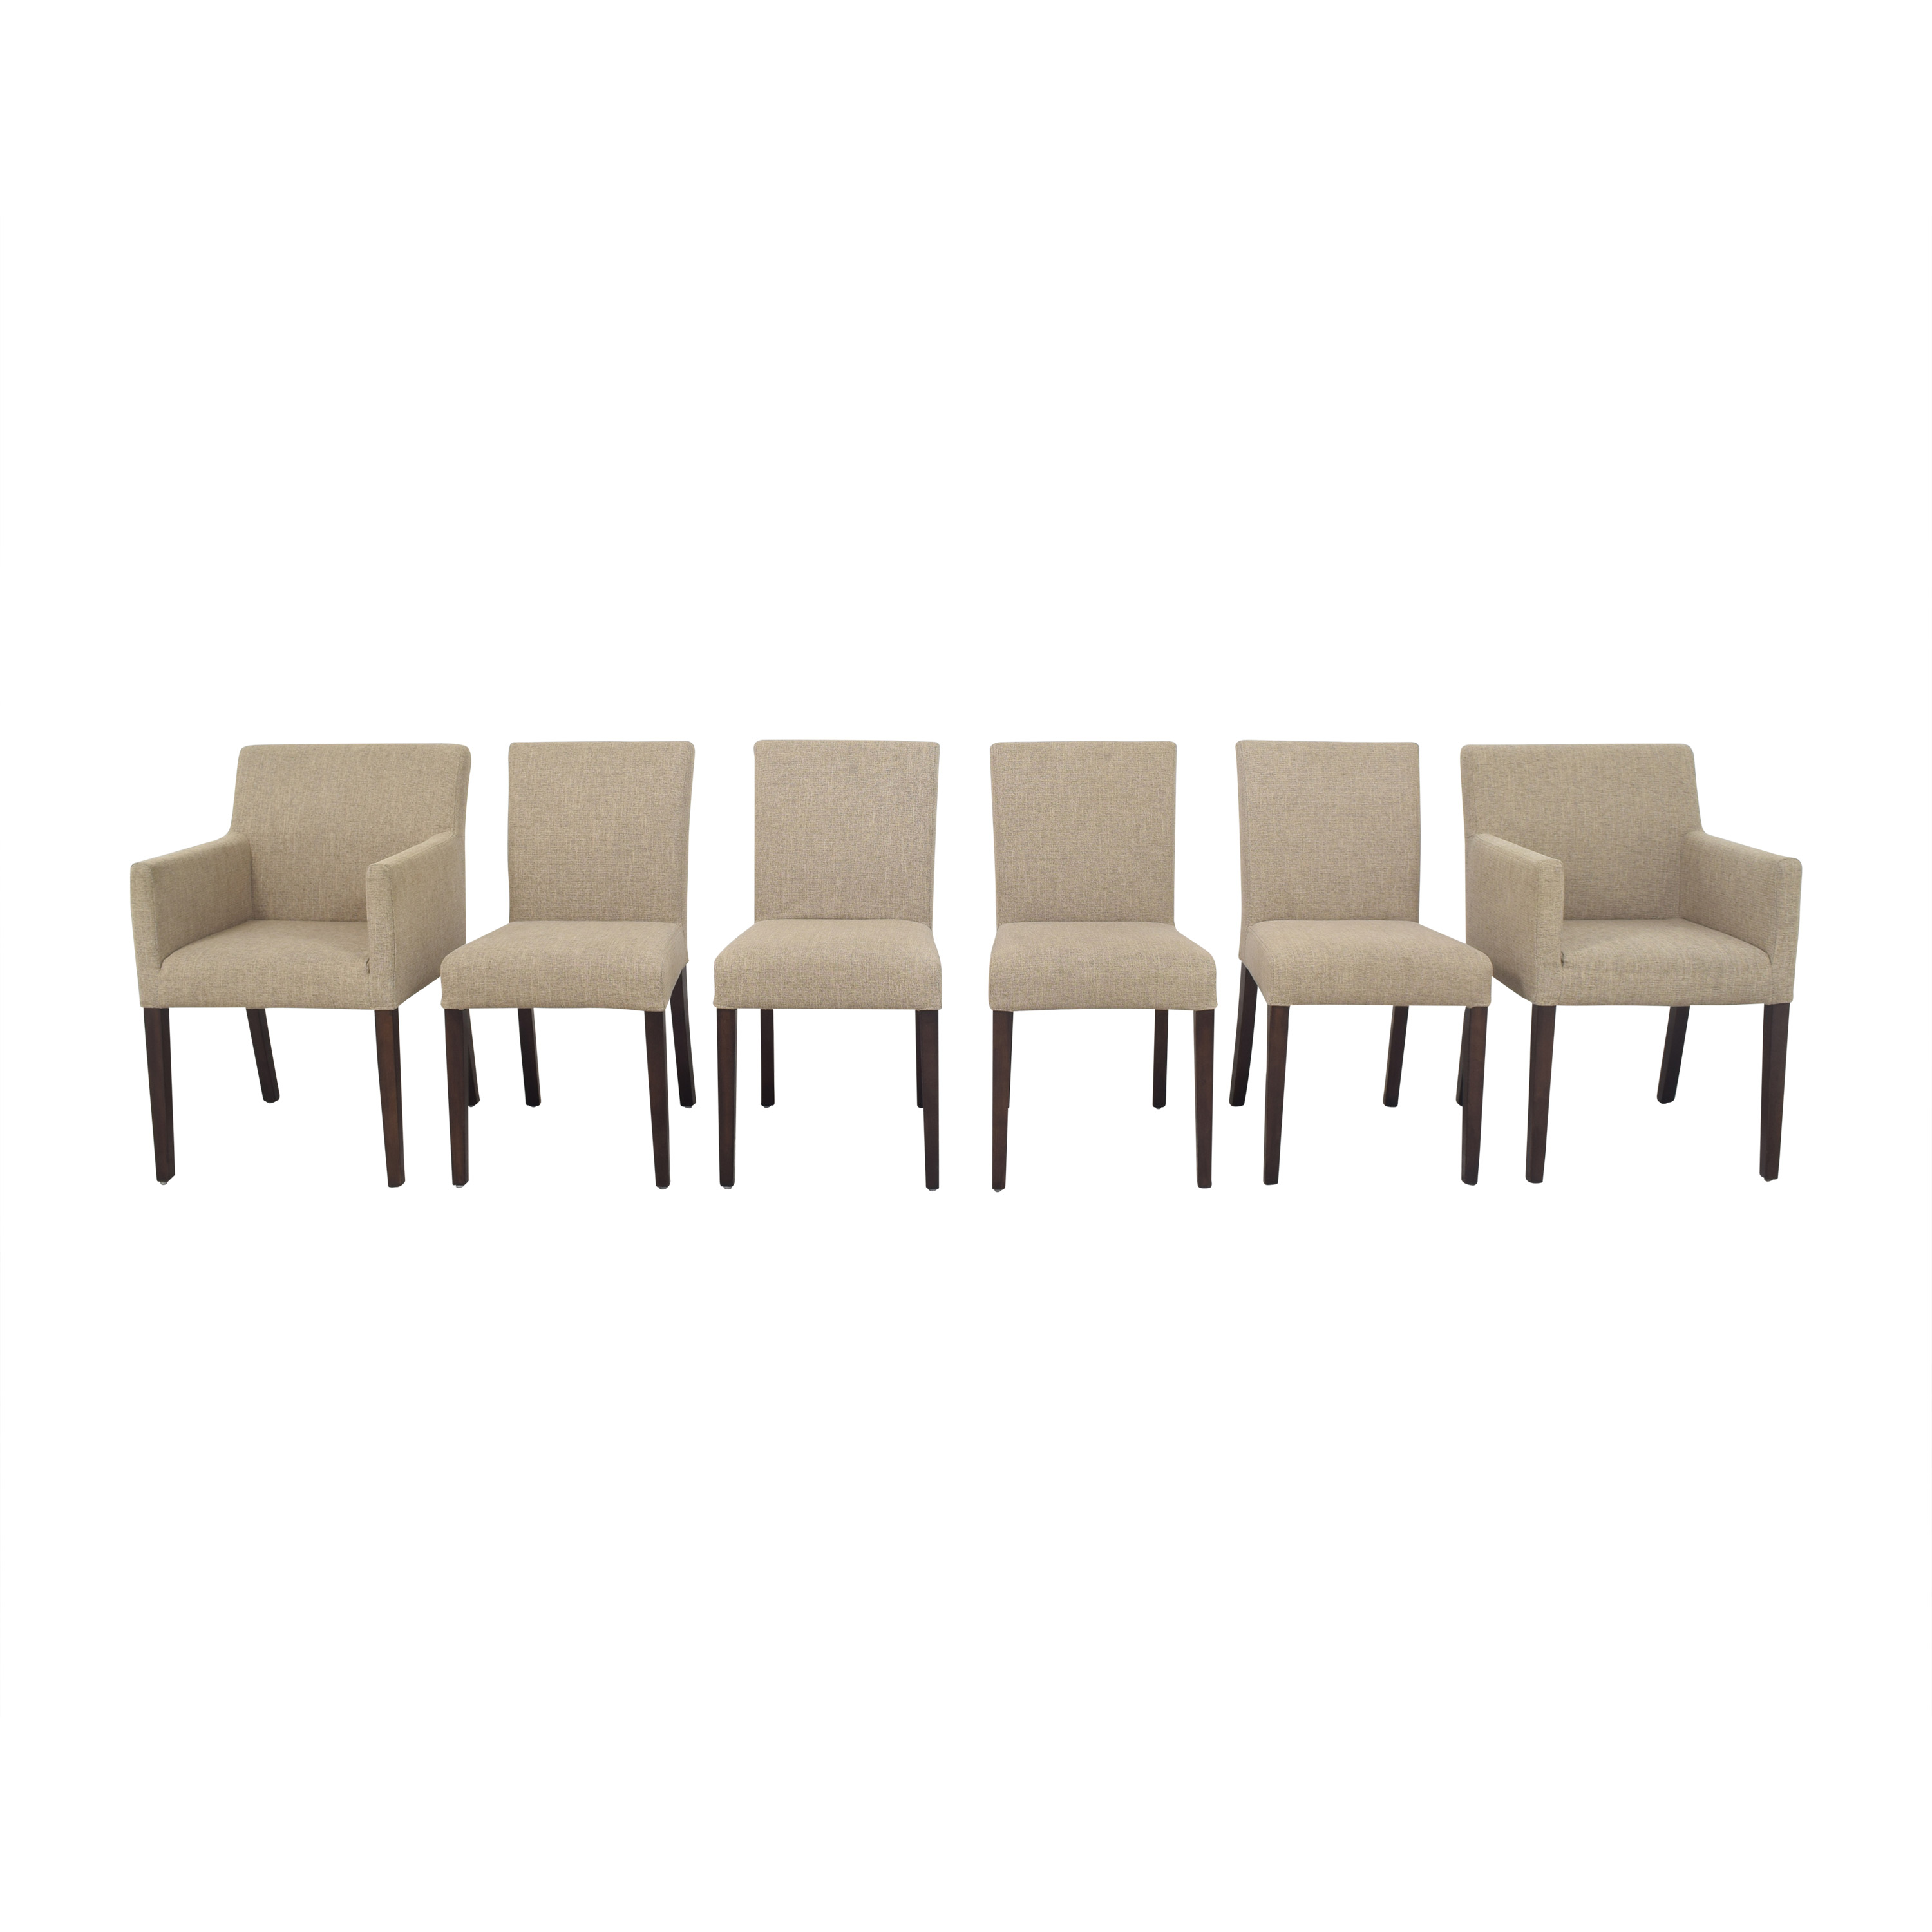 Crate & Barrel Crate & Barrel Lowe Upholstered Dining Chairs nj